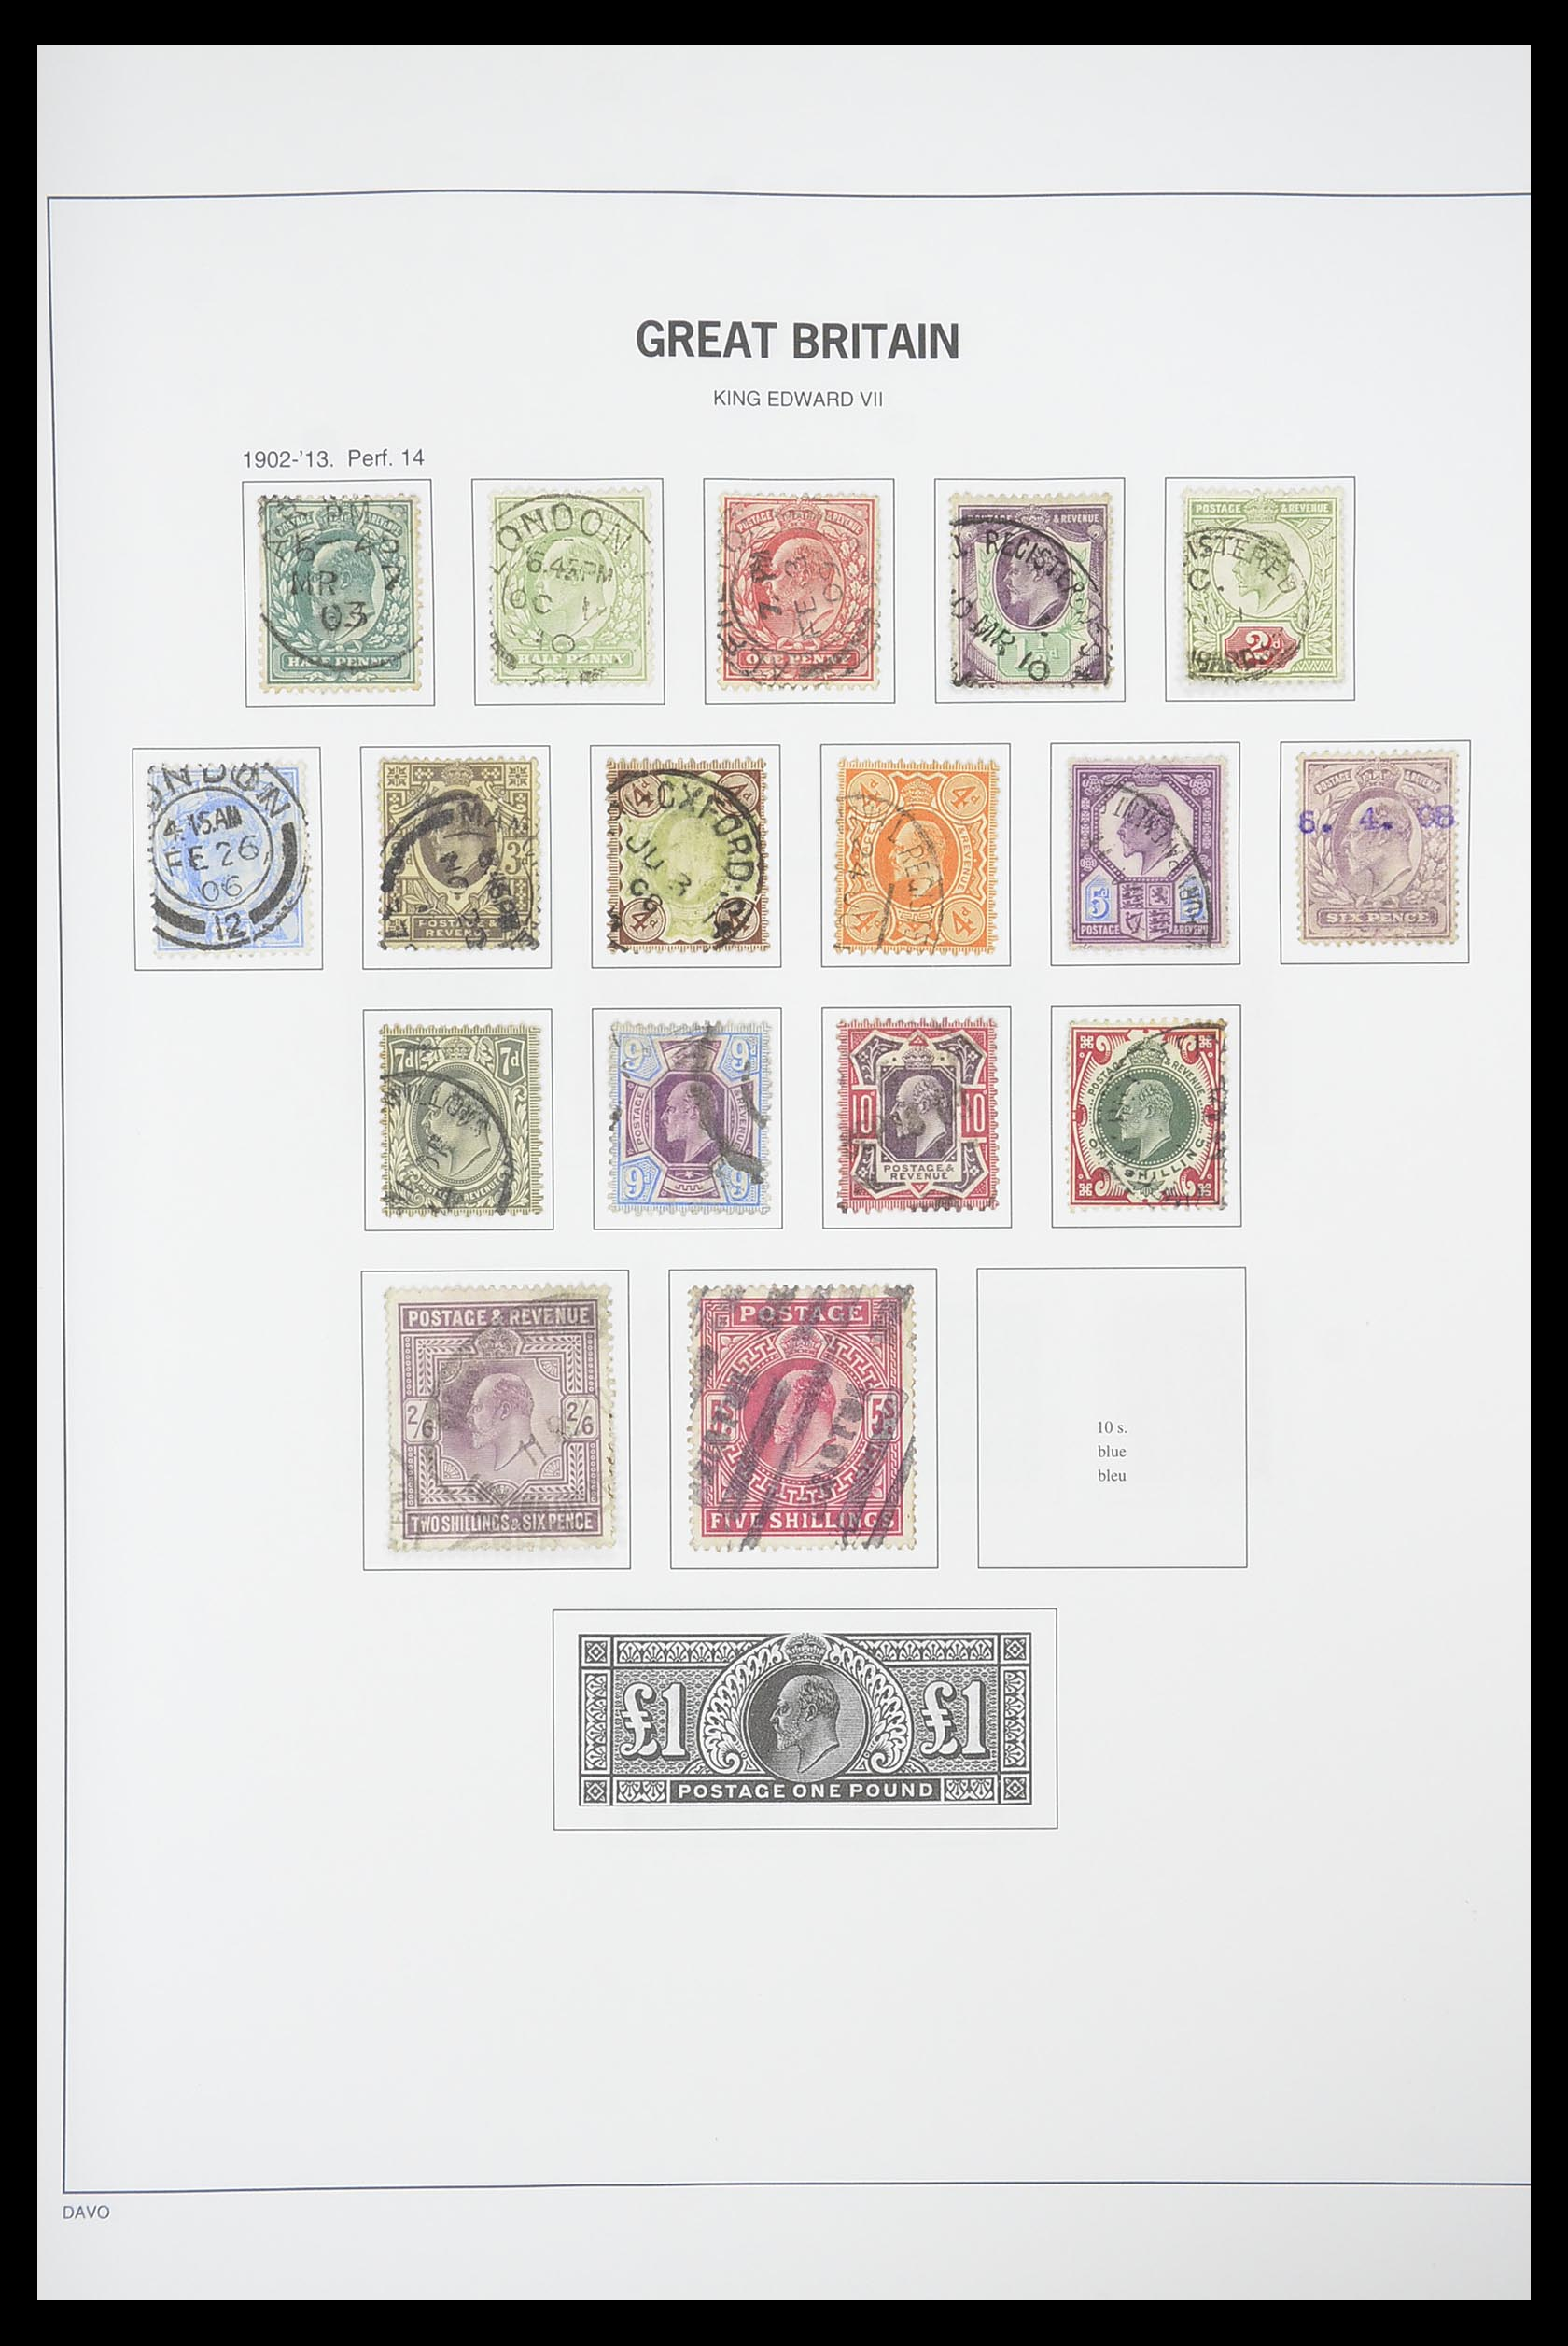 33898 007 - Stamp collection 33898 Great Britain 1840-2006.